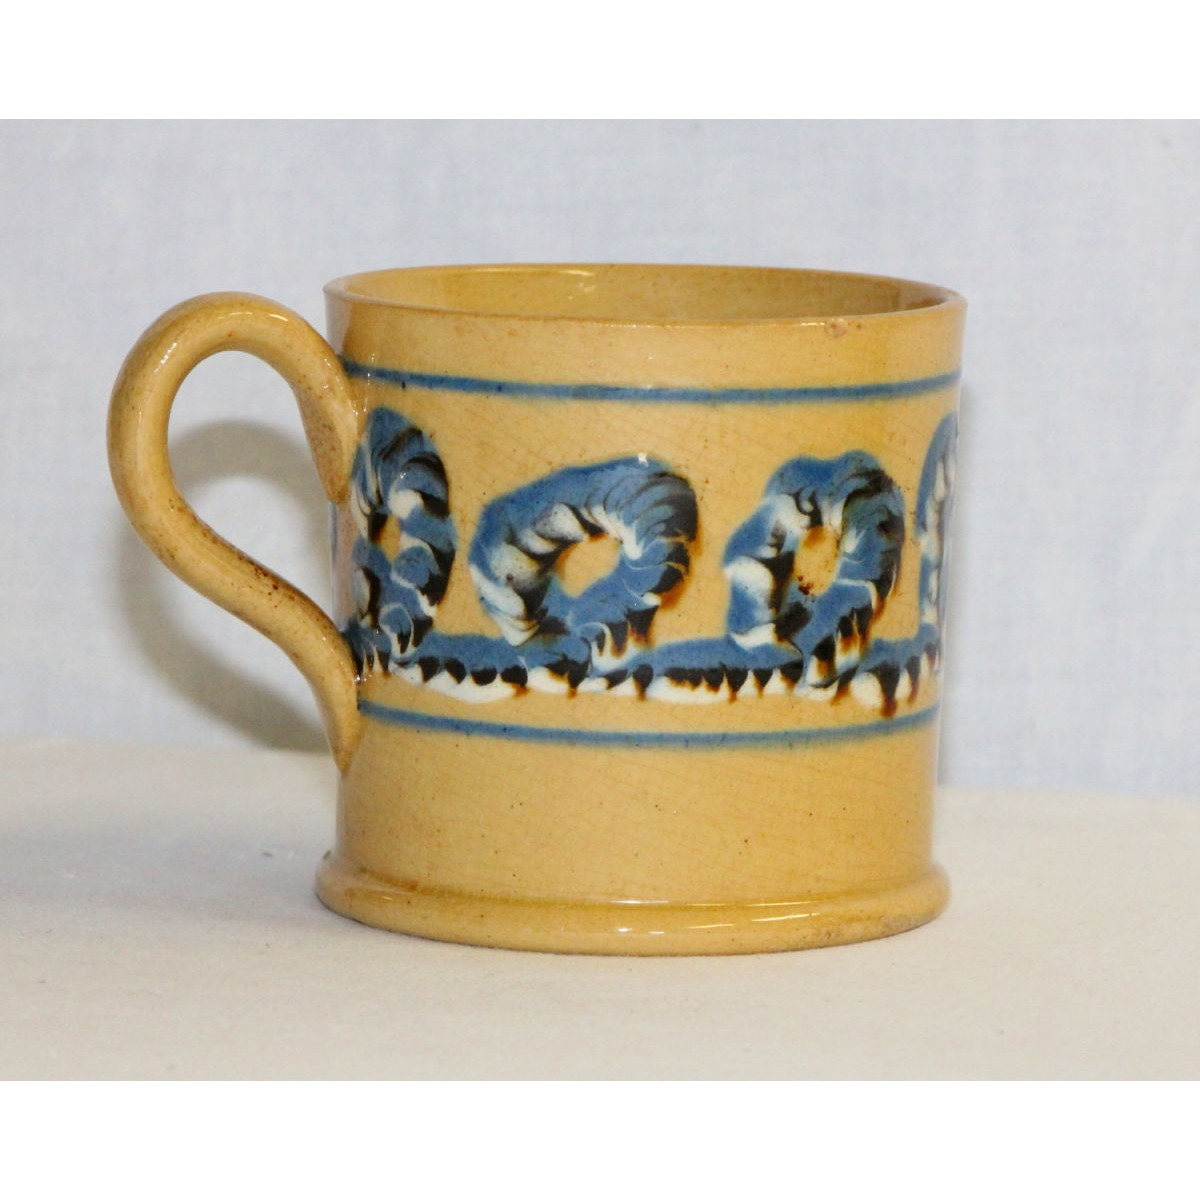 Extraordinary Rare Yellowware Earthworm Mochaware Mug